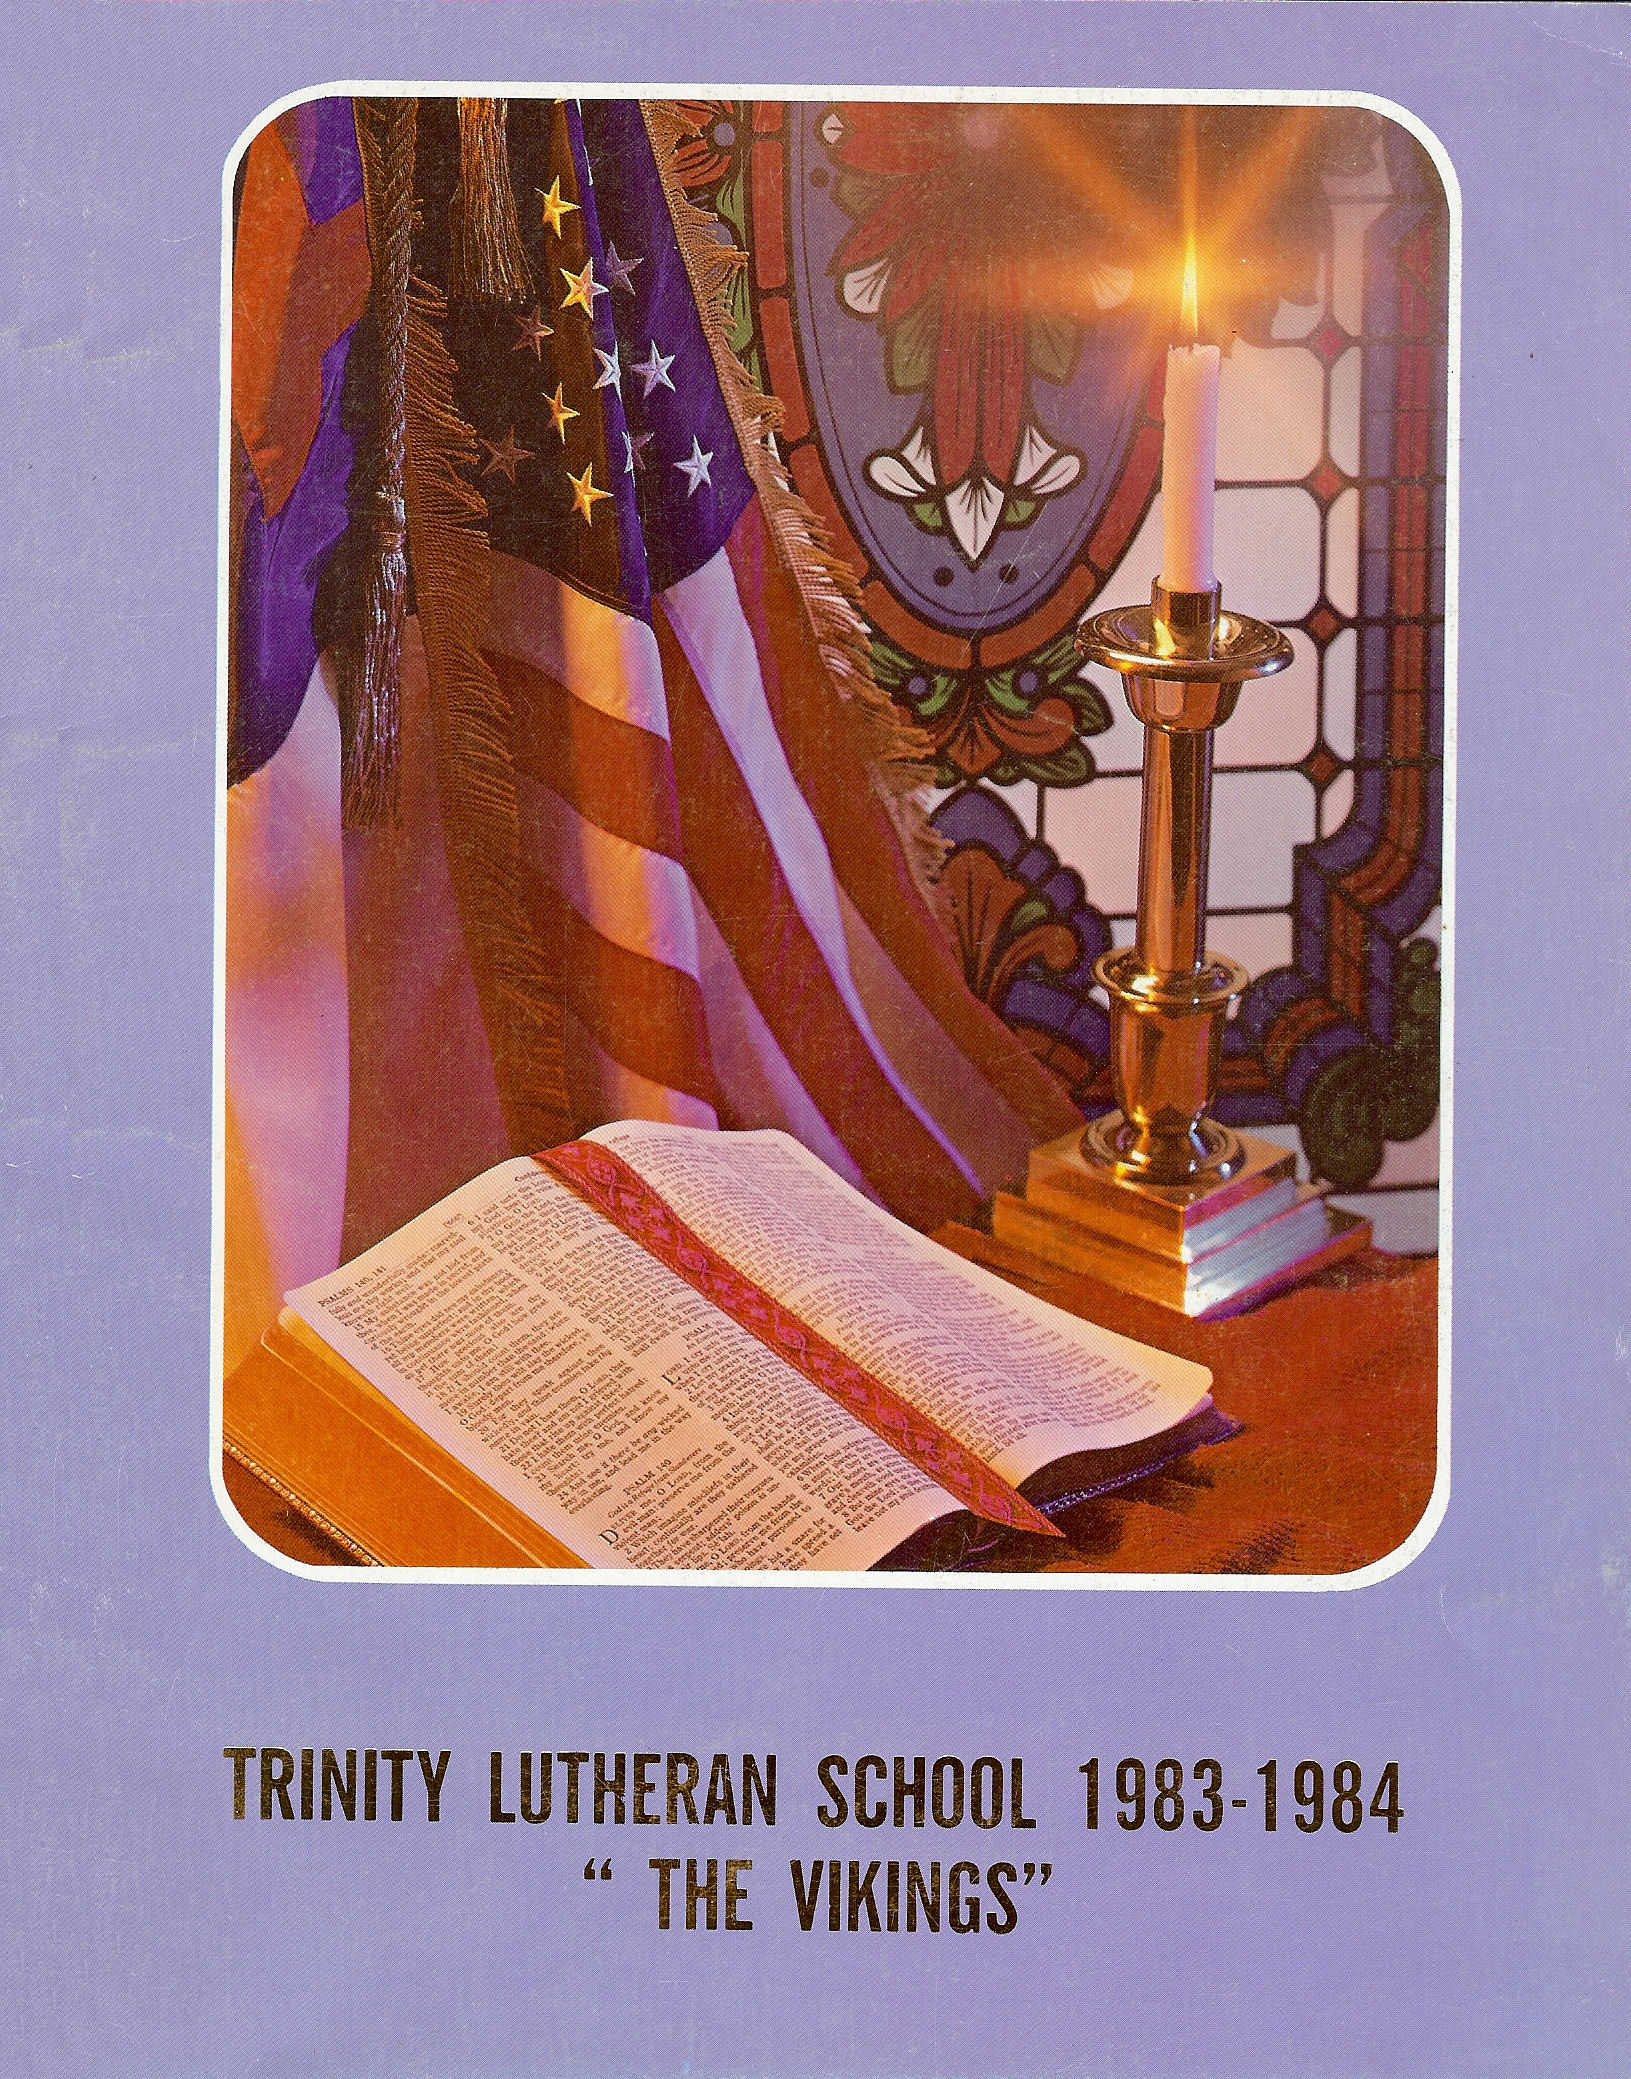 83-84 Yearbook Cover